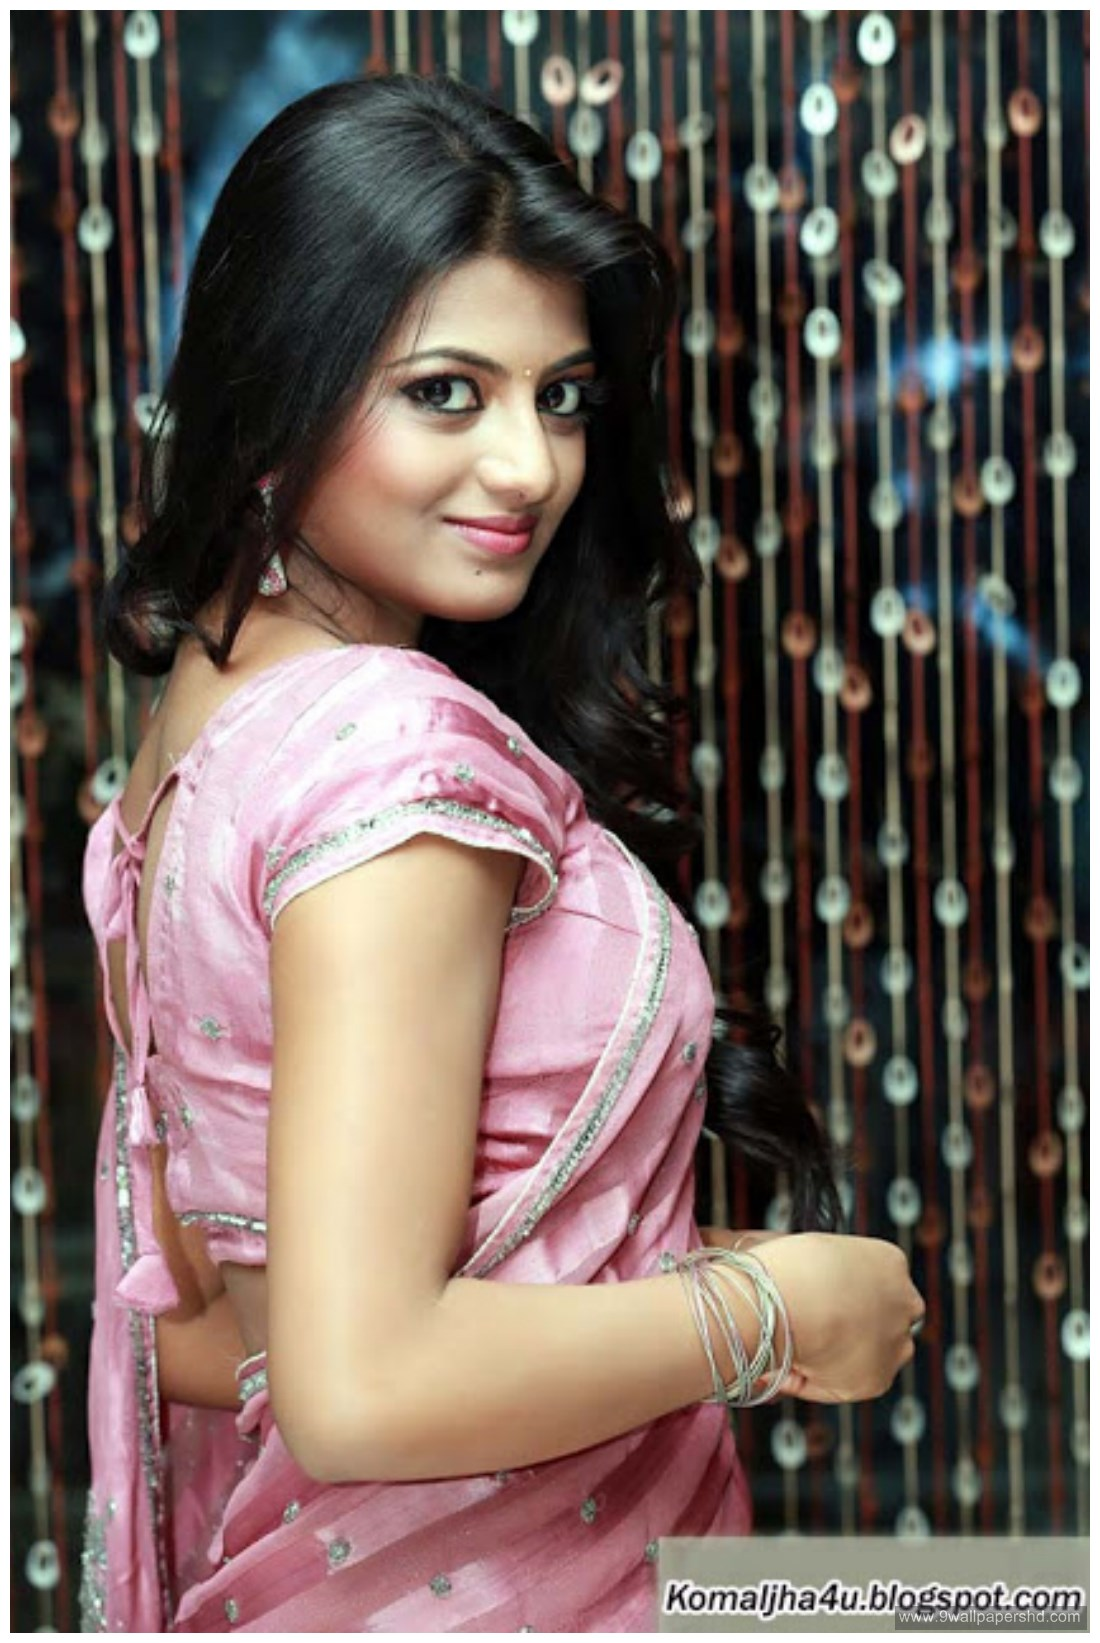 Tamil Actress Anandhi 2016 HD Wallpapers | Wallpapers | Pinterest